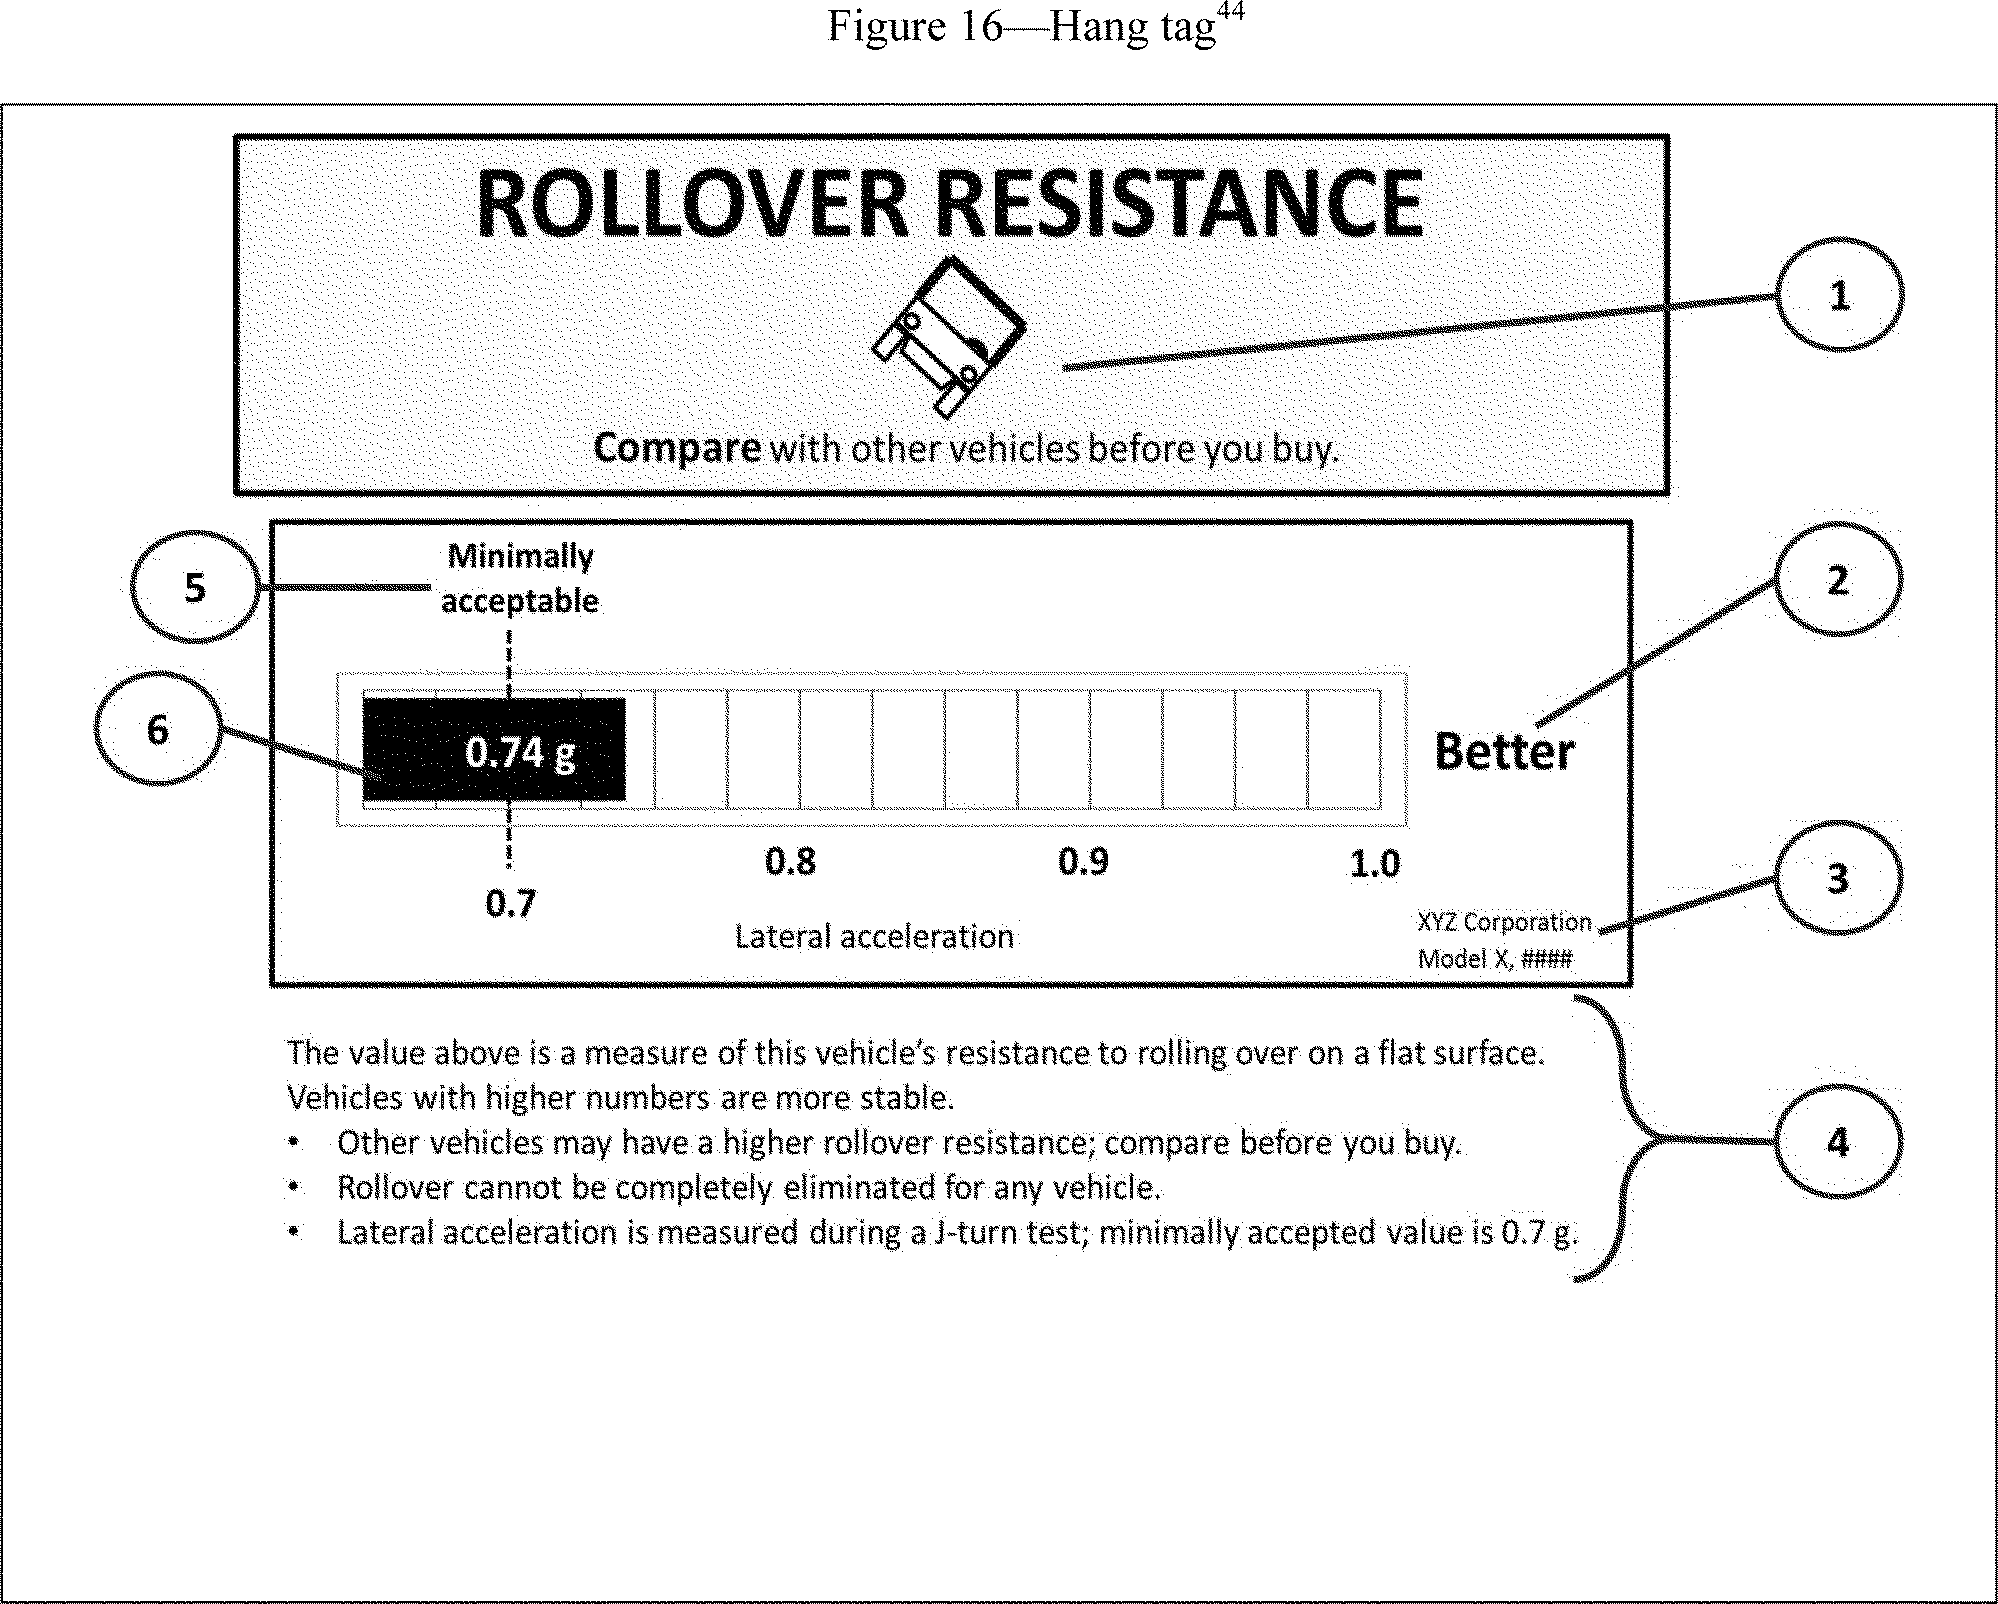 Federal Register Safety Standard For Recreational Off Highway John Deere Belt Diagram 8 10 From 7 Votes 9 Graphs Should Have A Unique Title And The Axes Be Fully Labeled With Units Of Measurement Also Distinguished Text